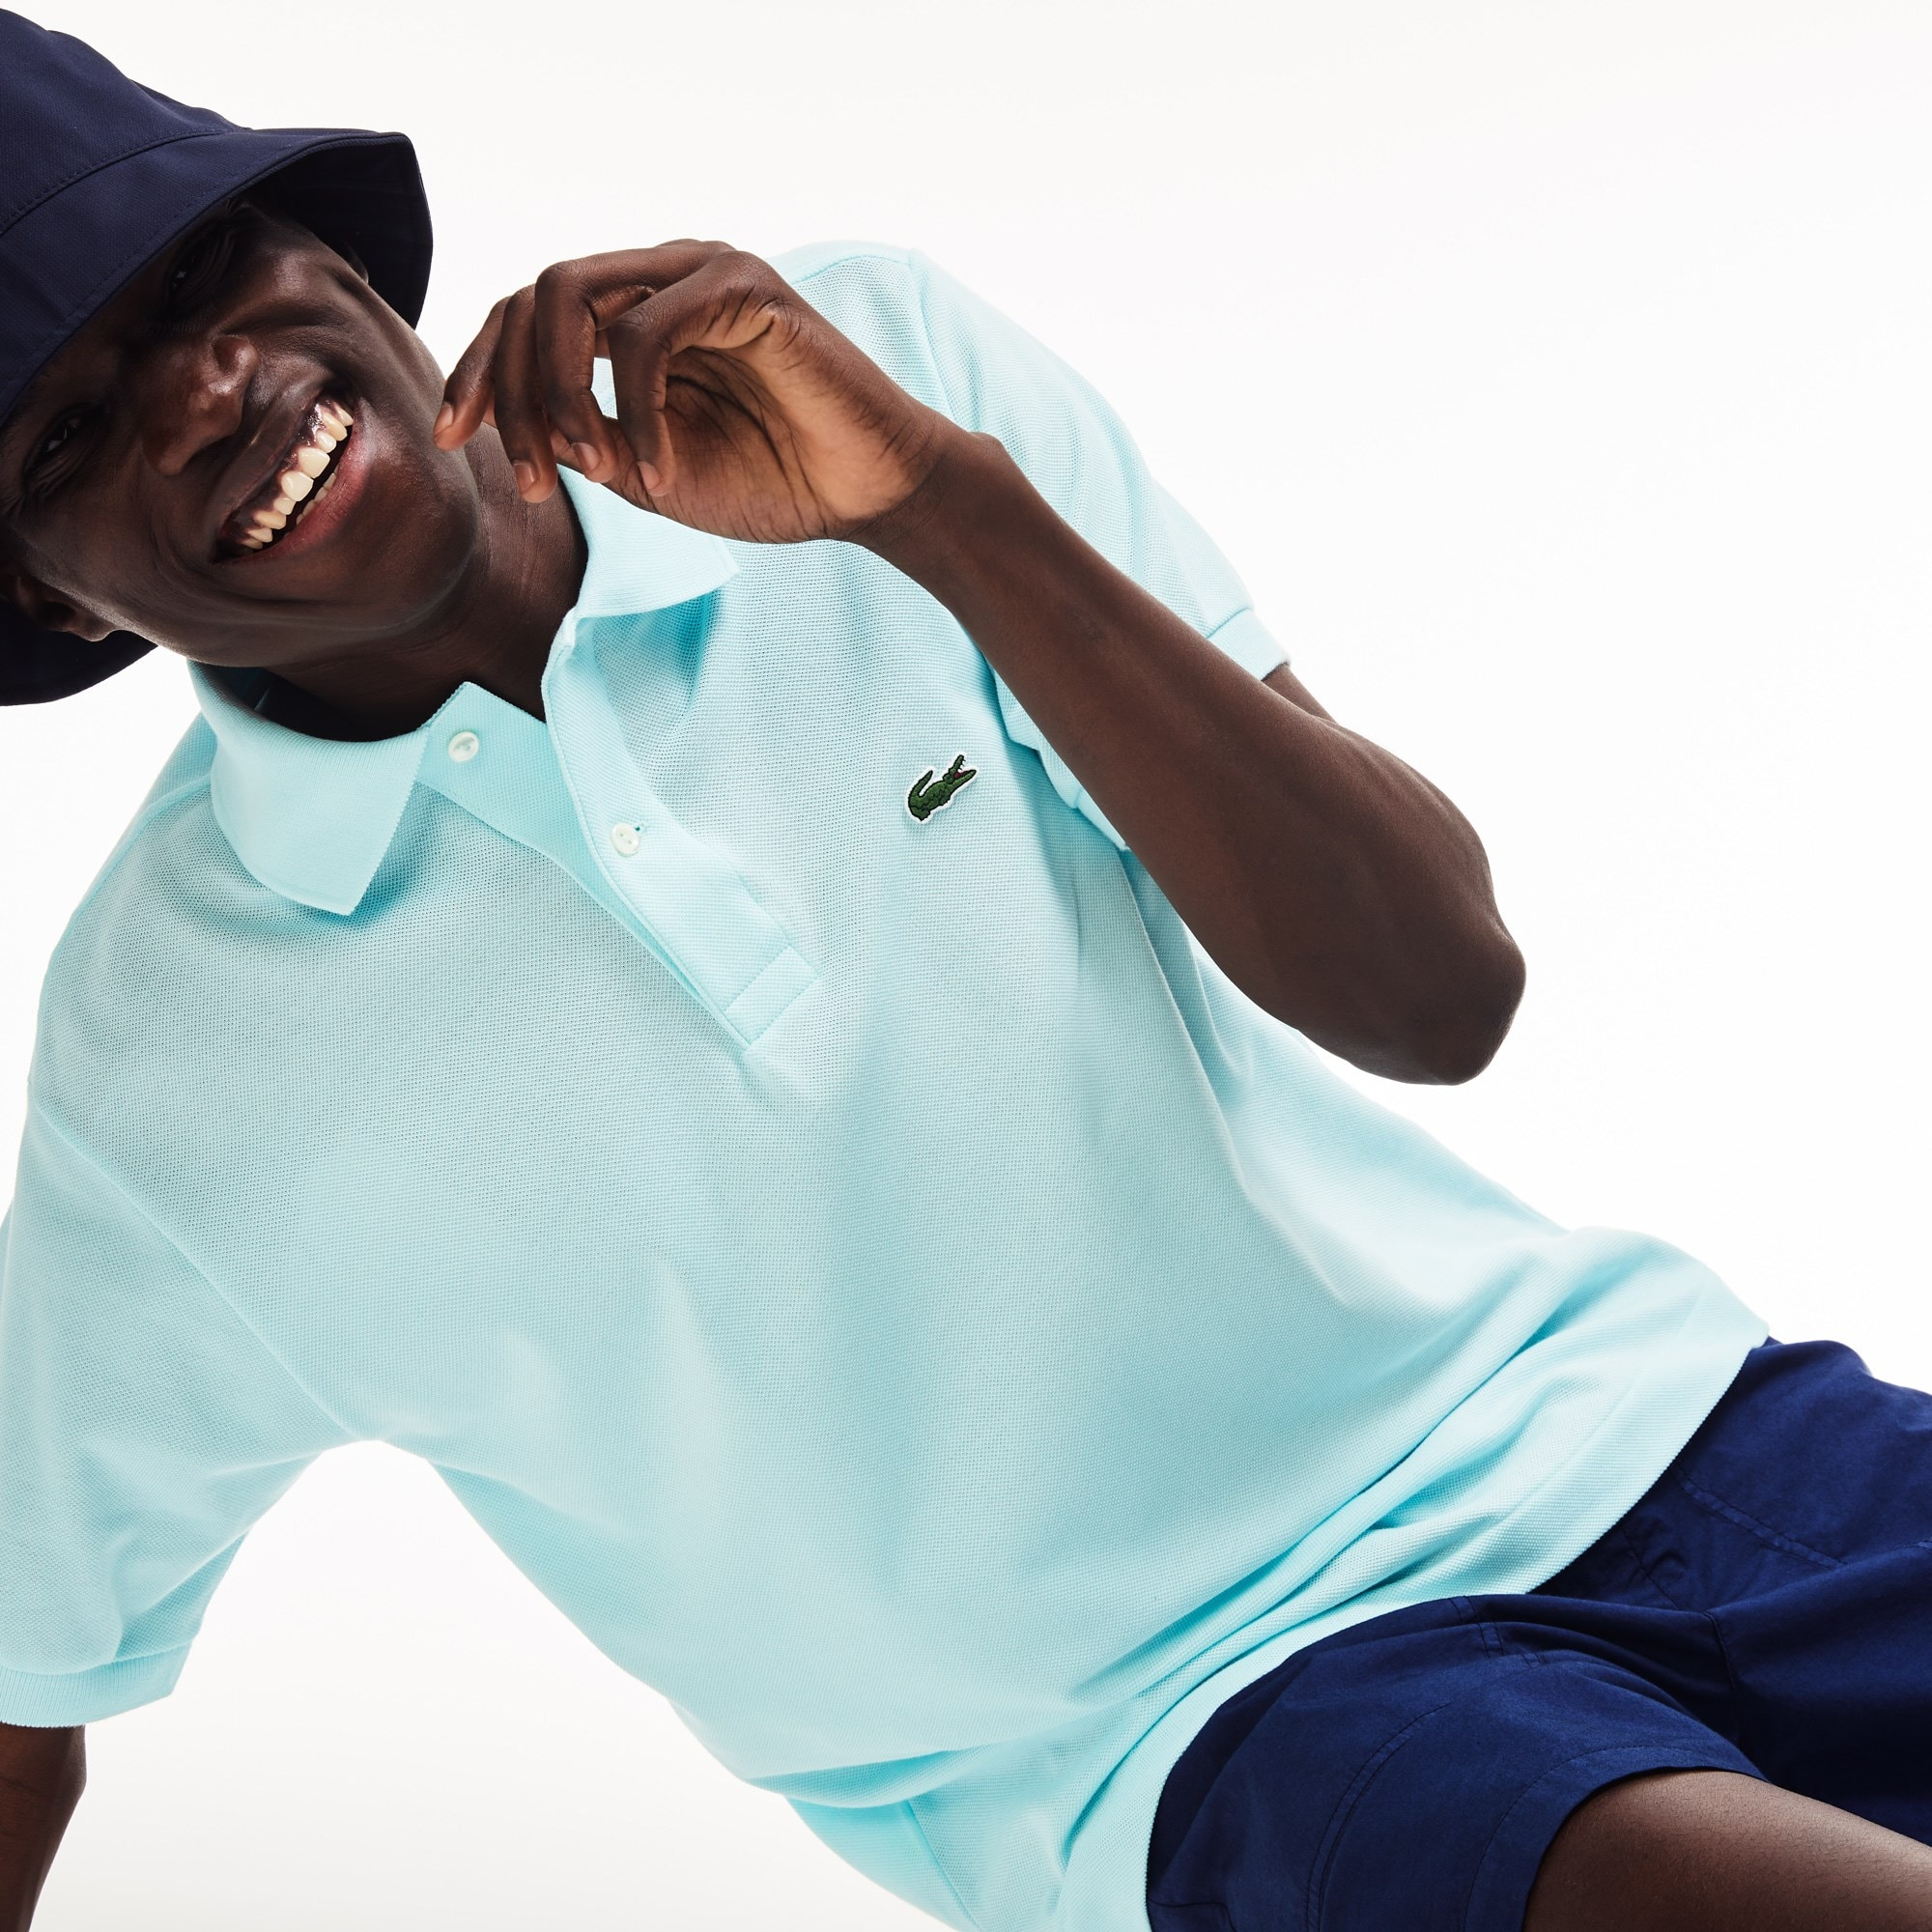 e0b1b62bed Polo shirts, shoes, leather goods | LACOSTE Online Boutique